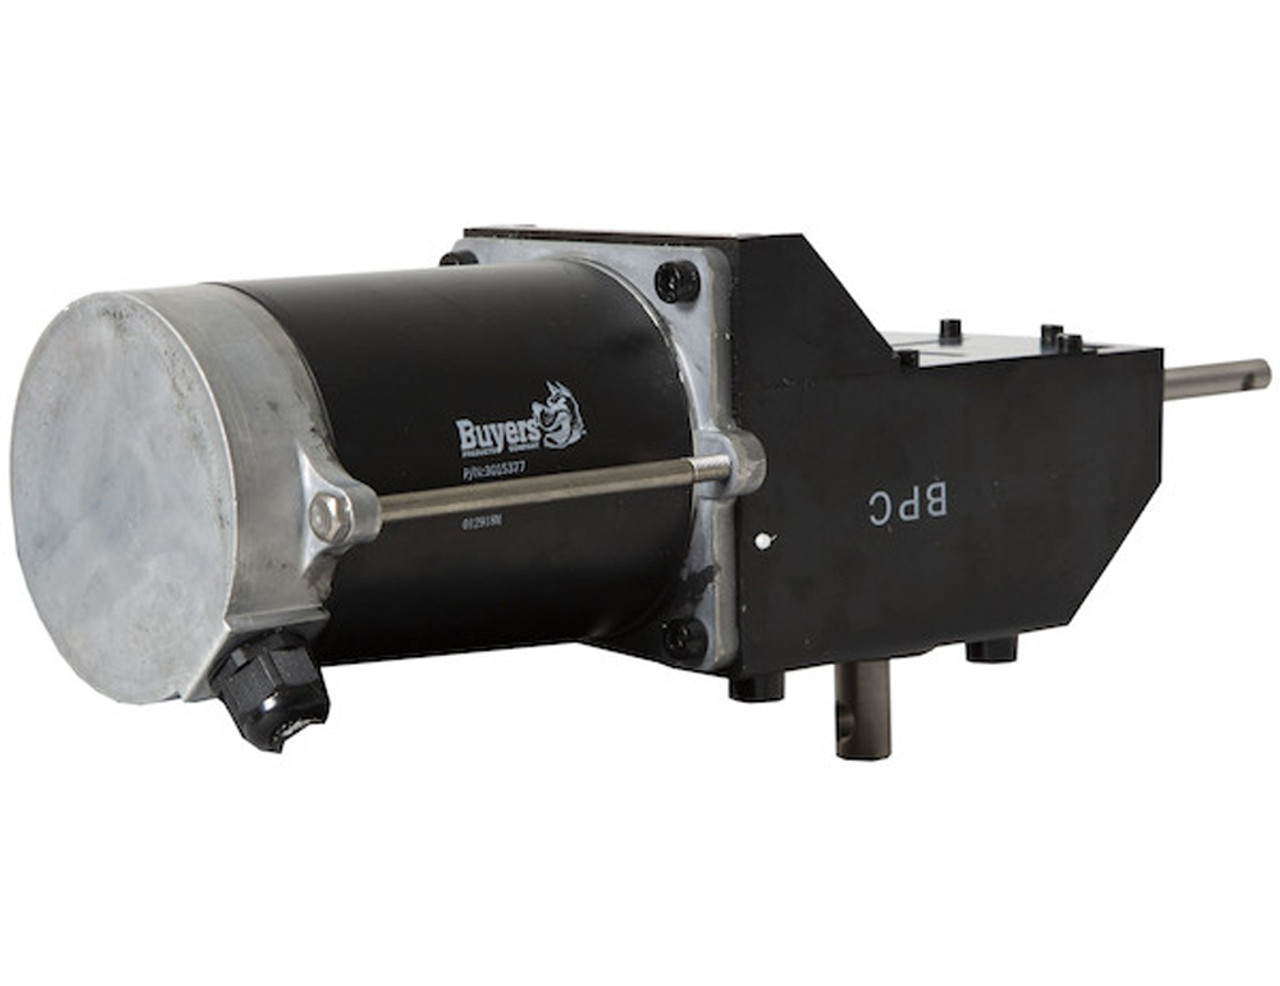 3015377 BUYERS SALTDOGG REPLACEMENT .5 HP 12 VDC DUAL SHAFT GEAR MOTOR FOR TGS03 AND TGS07 5